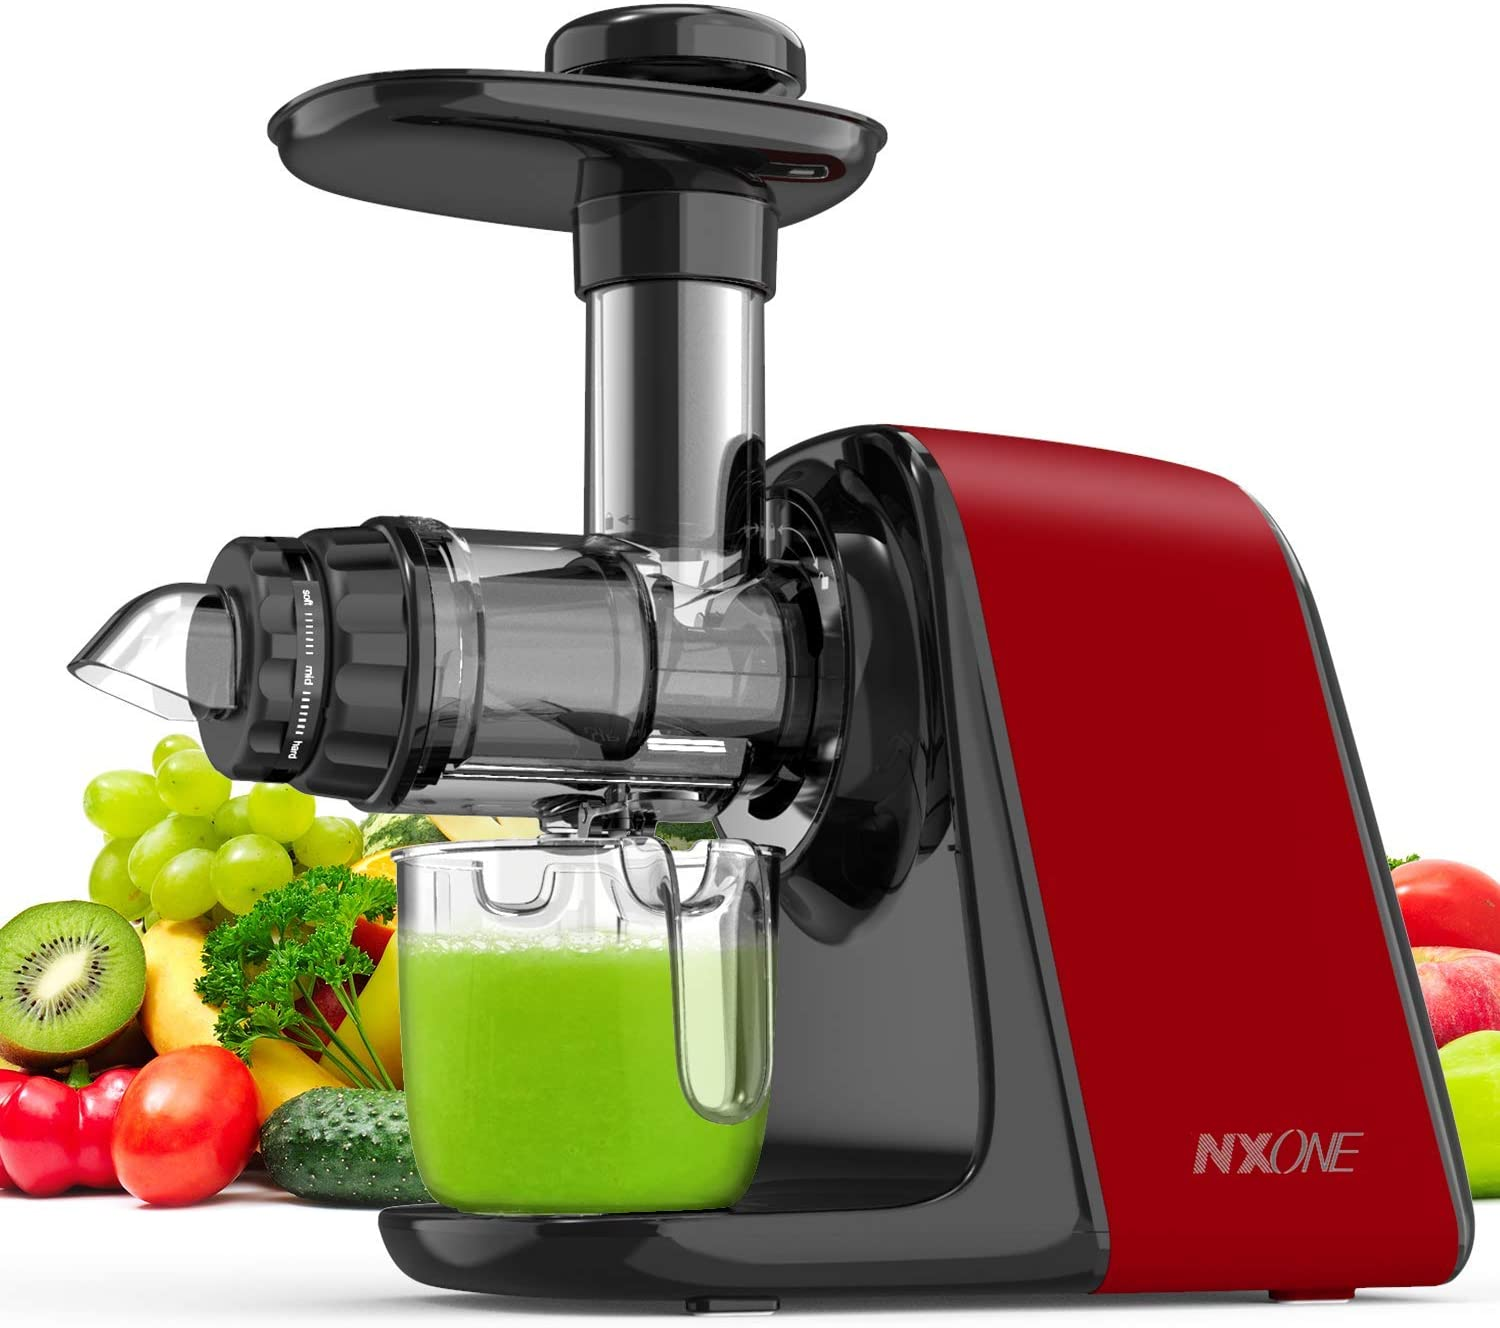 NXONE Slow Masticating Juicer (Cold Press Juicer Extractor, Red)